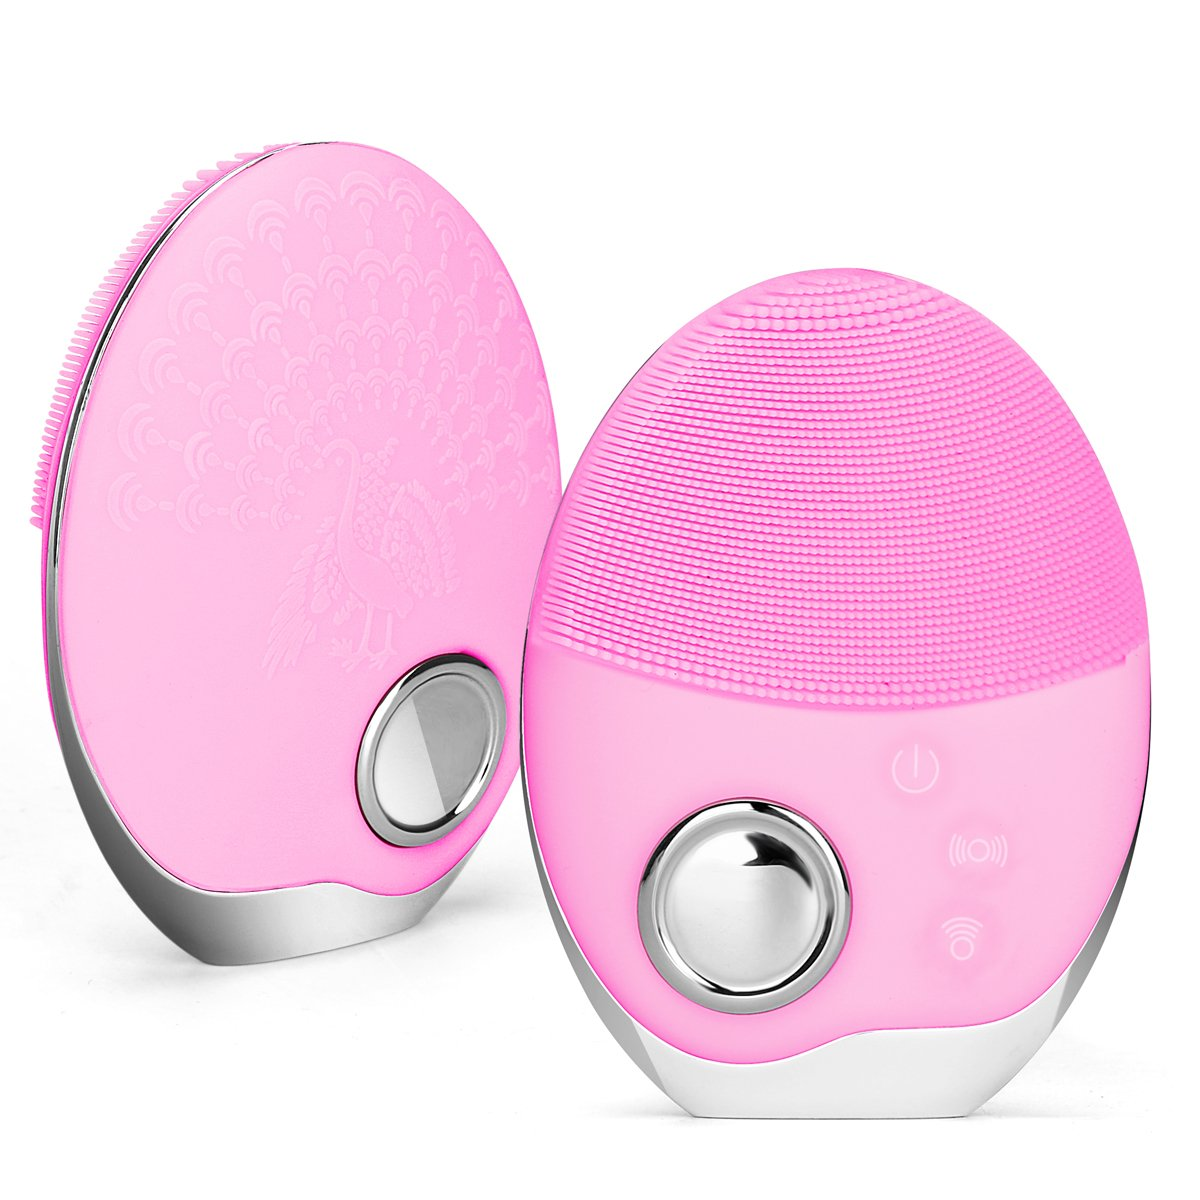 Sonic Facial Cleansing Brush, Joly Face Massager IPX7 Waterproof Face Brush with Wireless Charger 15 Speeds Deep Cleansing for Gentle Exfoliating Removing Blackhead Reduce Acne Skin Care (Pink)